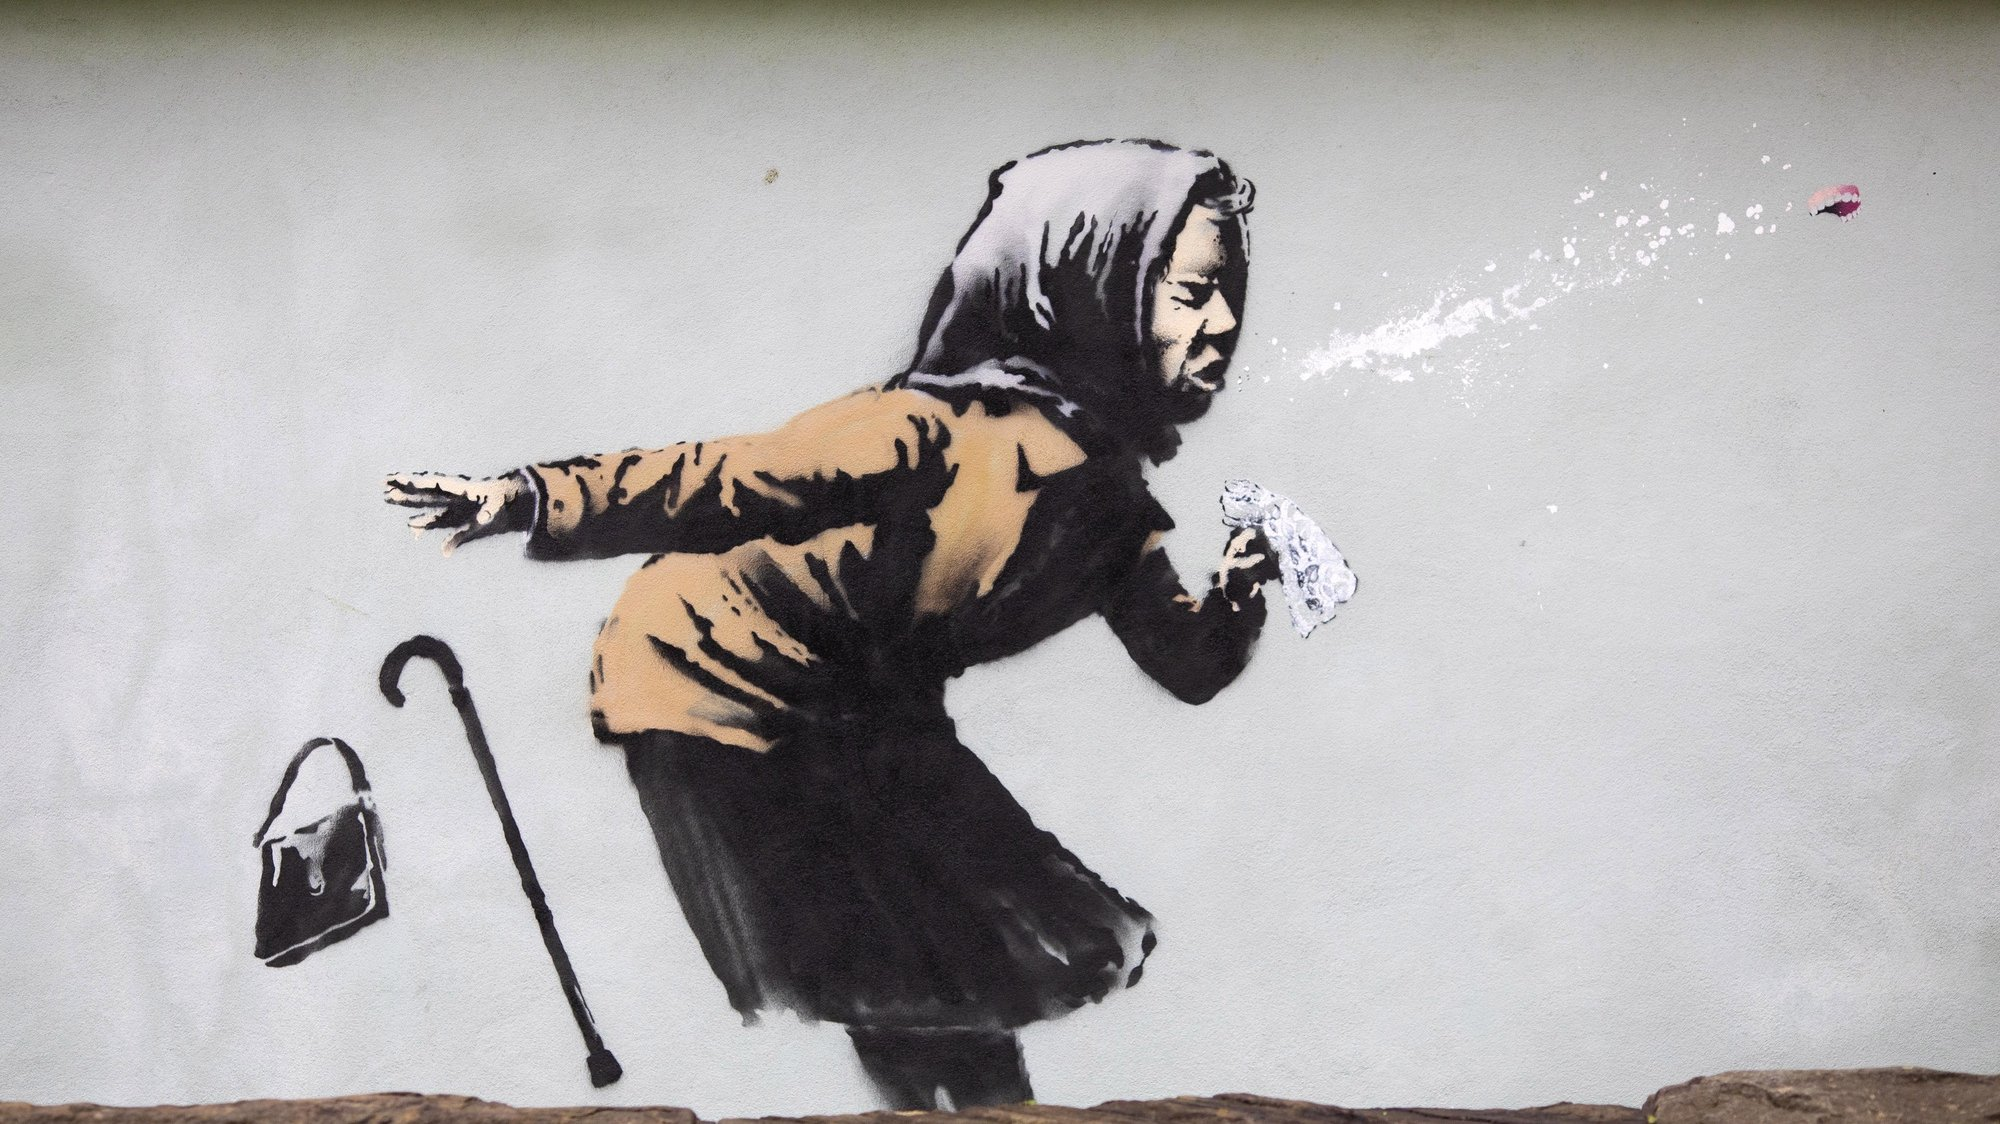 epa08875124 A view of the new creation entitled 'Aachoo!!' by British street artist Banksy that appeared on Vale Street overnight in Bristol, Britain, 10 December 2020. The painting depicts an old woman sneezing with her false teeth flying out.  EPA/JON ROWLEY